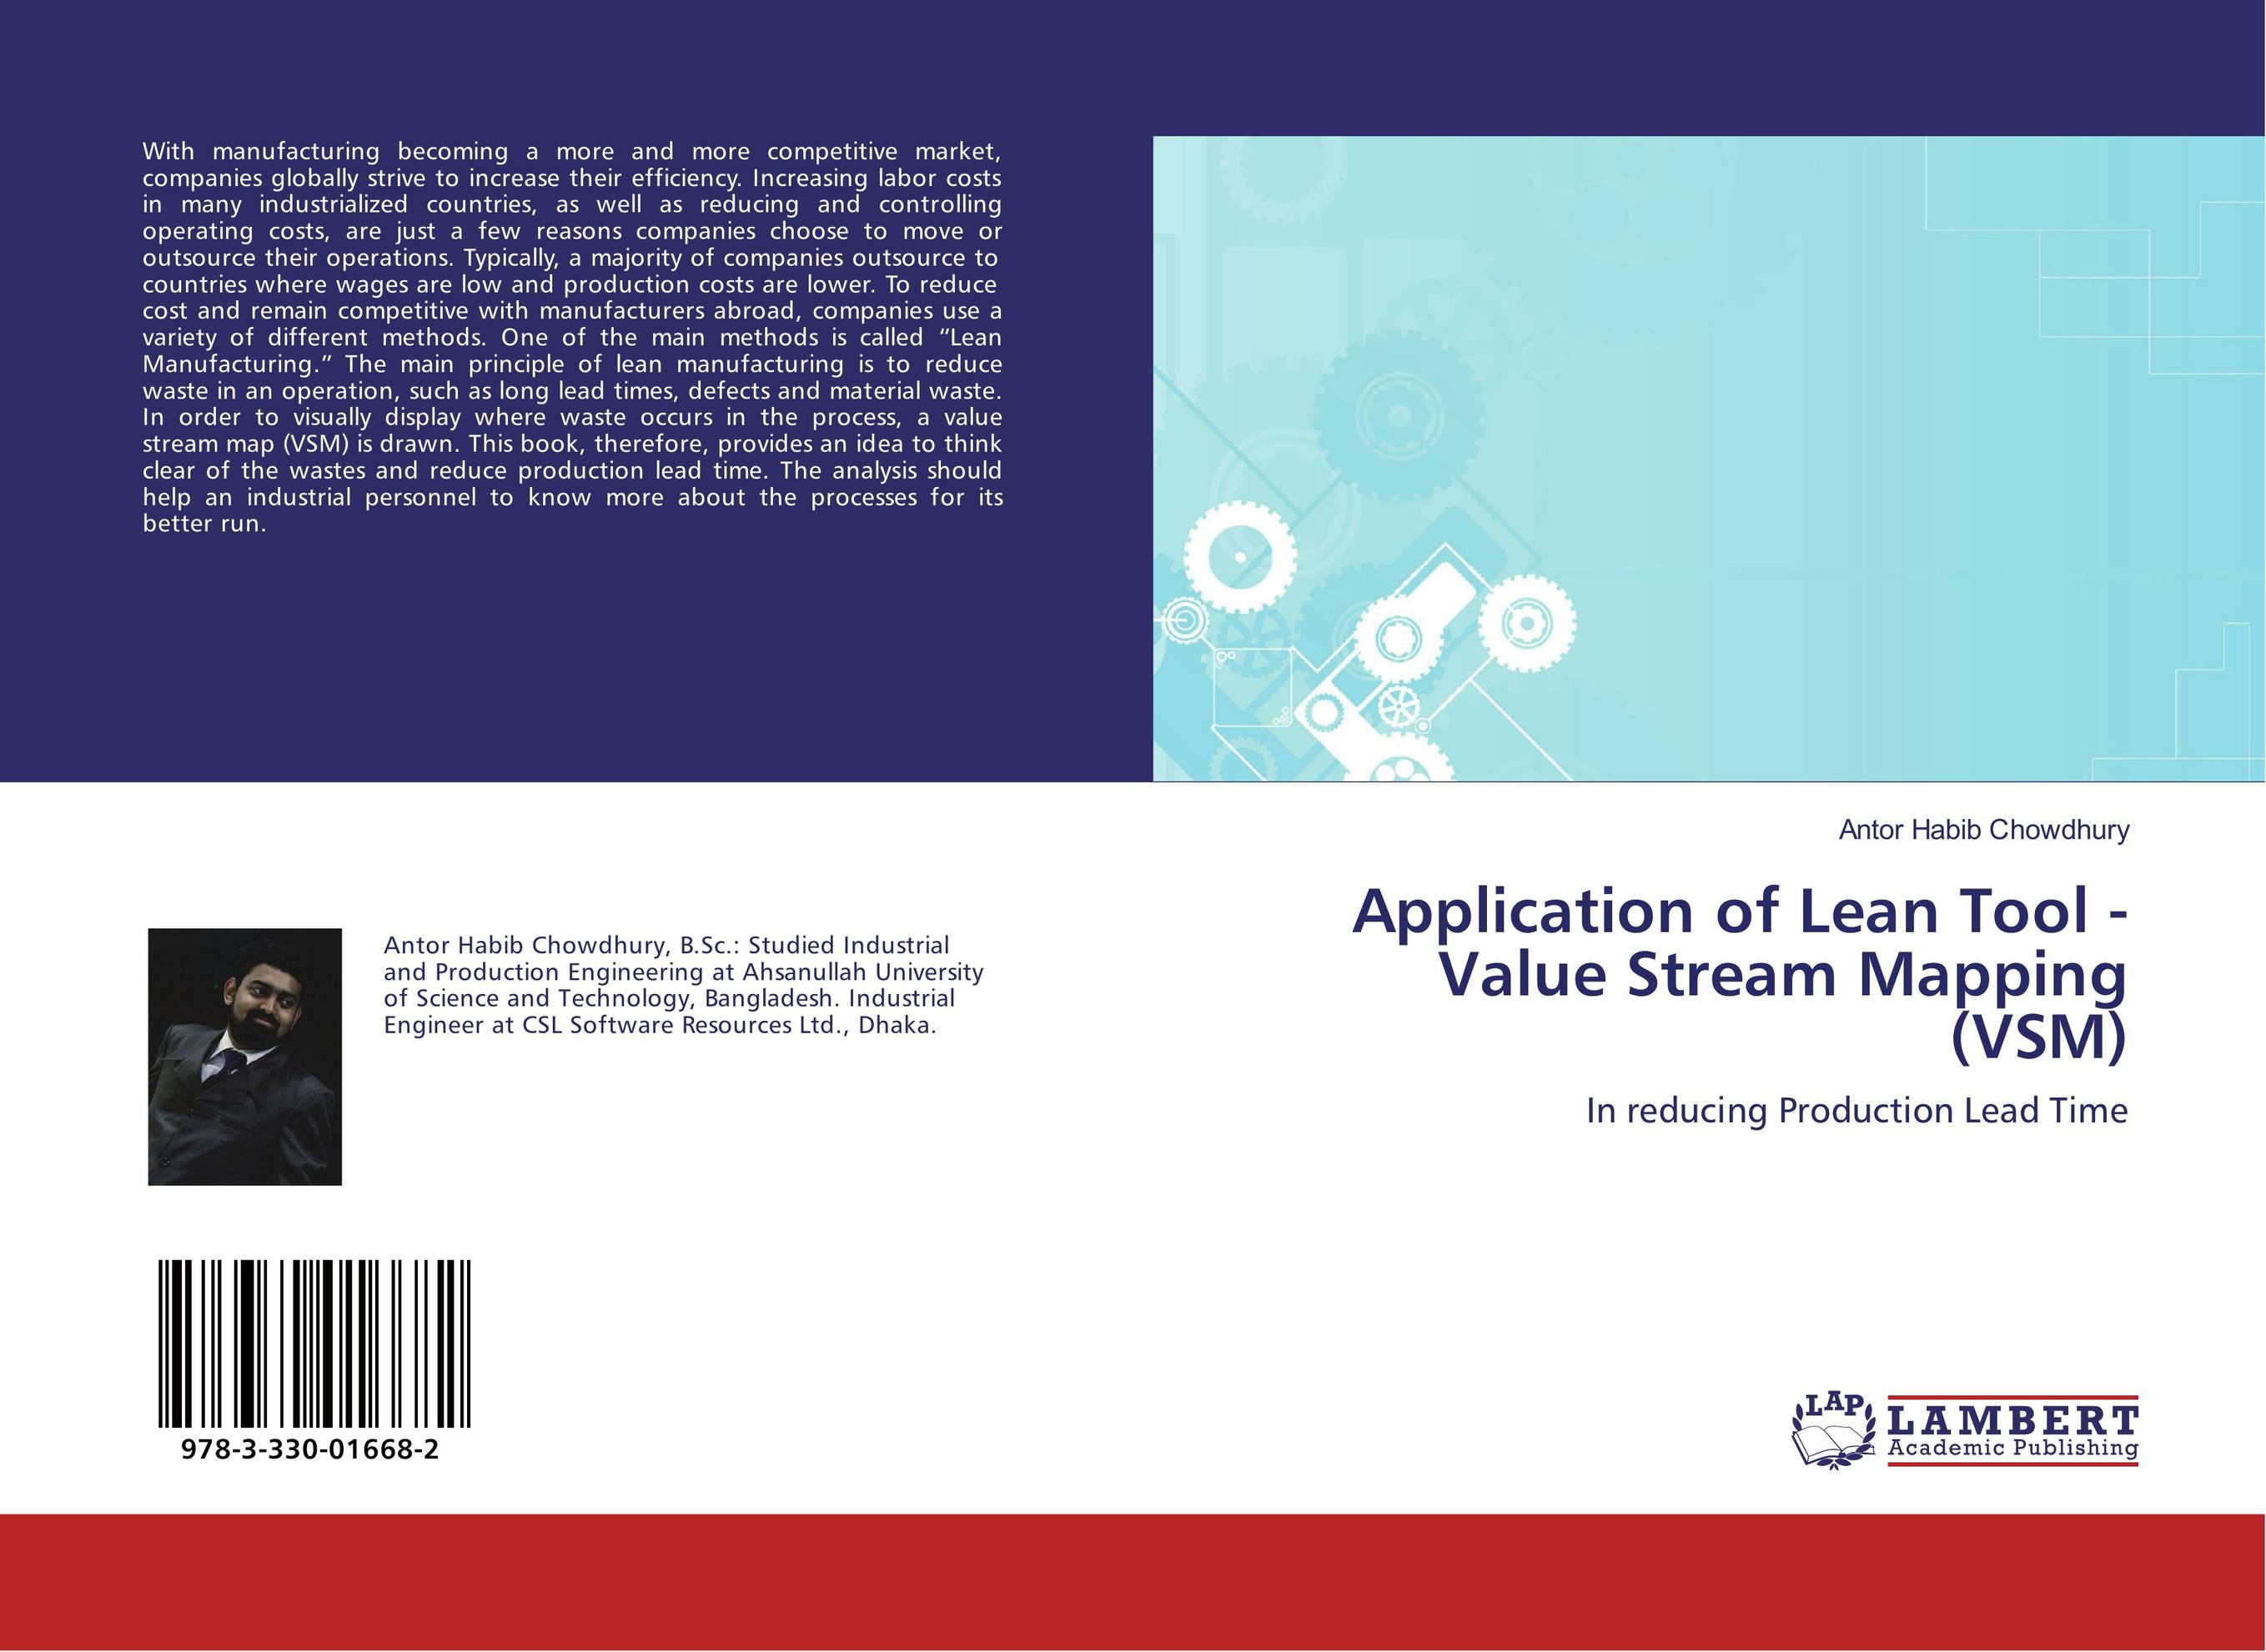 lean manufacturing is to reduce the lead time Reduces lead times (since each product or variant is manufactured more frequently) and inventory (since batches are smaller) reduce setup (changeover) time to less than 10 minutes techniques include: convert setup steps to be external (performed while the process is running.